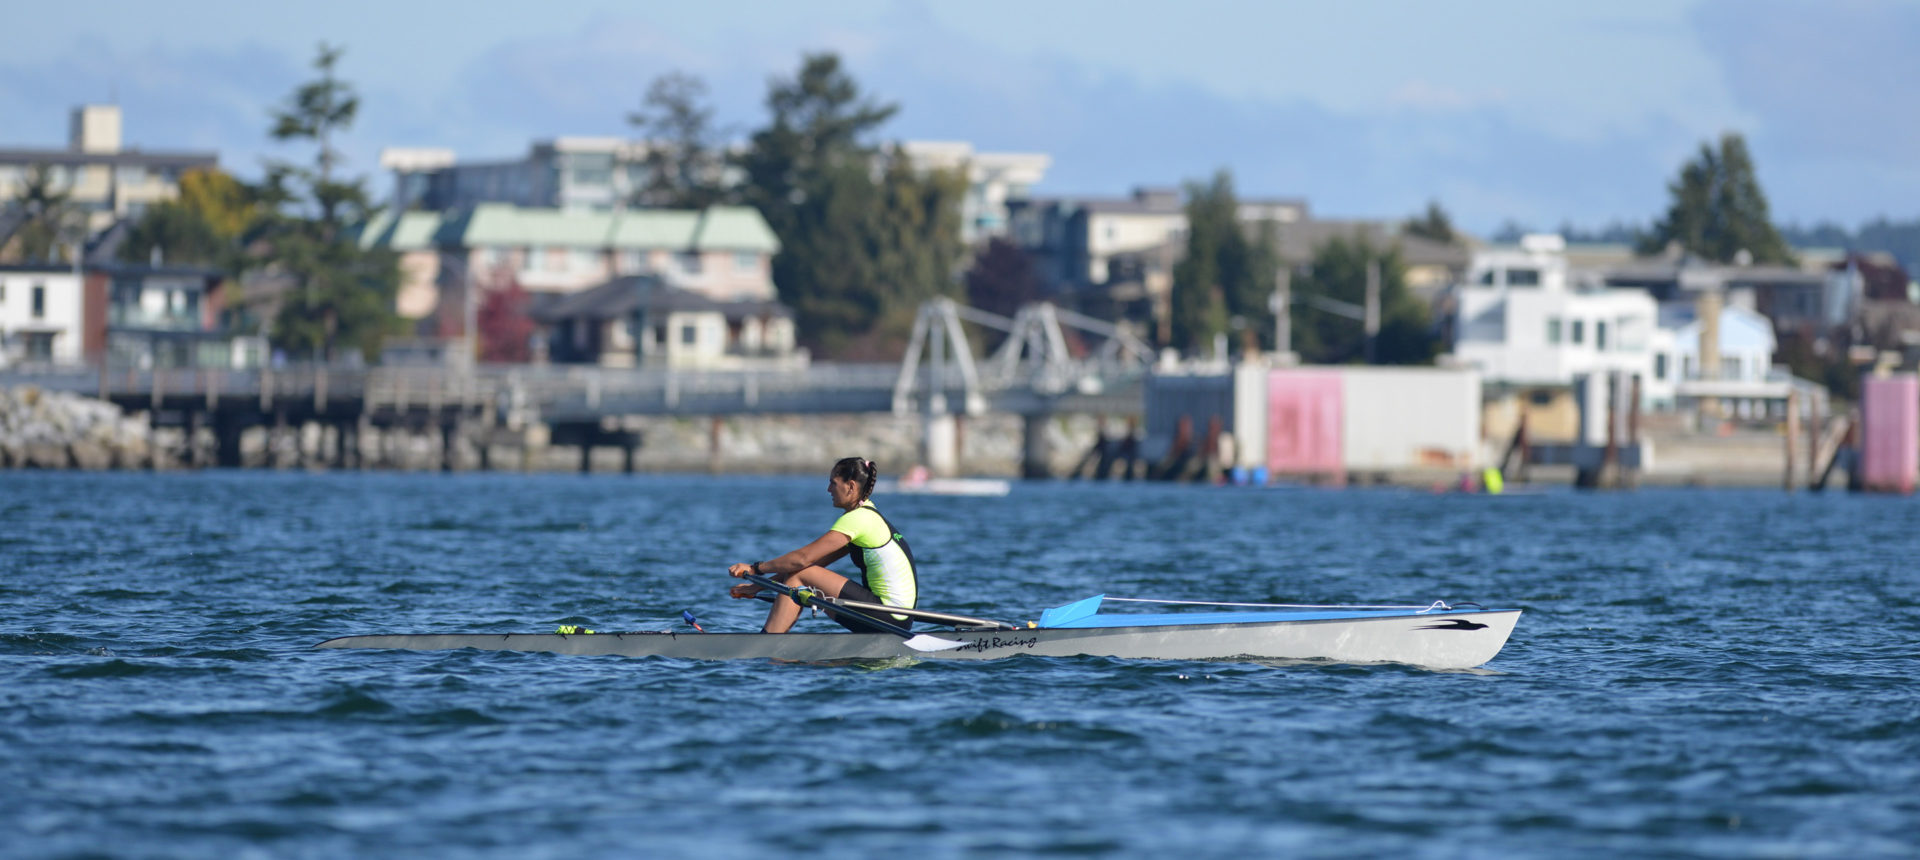 Canadian crews to race for inaugural World Rowing Beach Sprint Finals titles